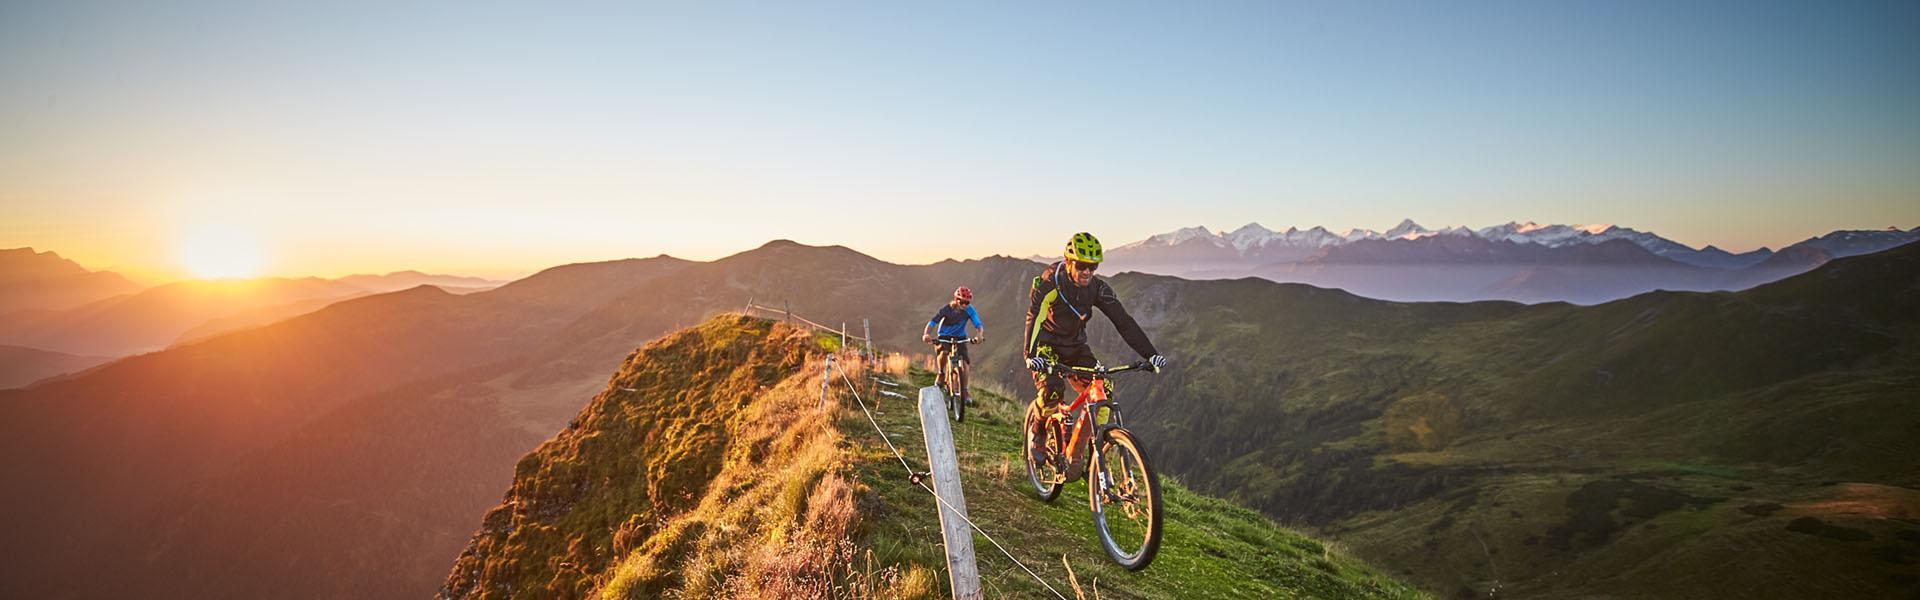 Mountainbiken Saalbach